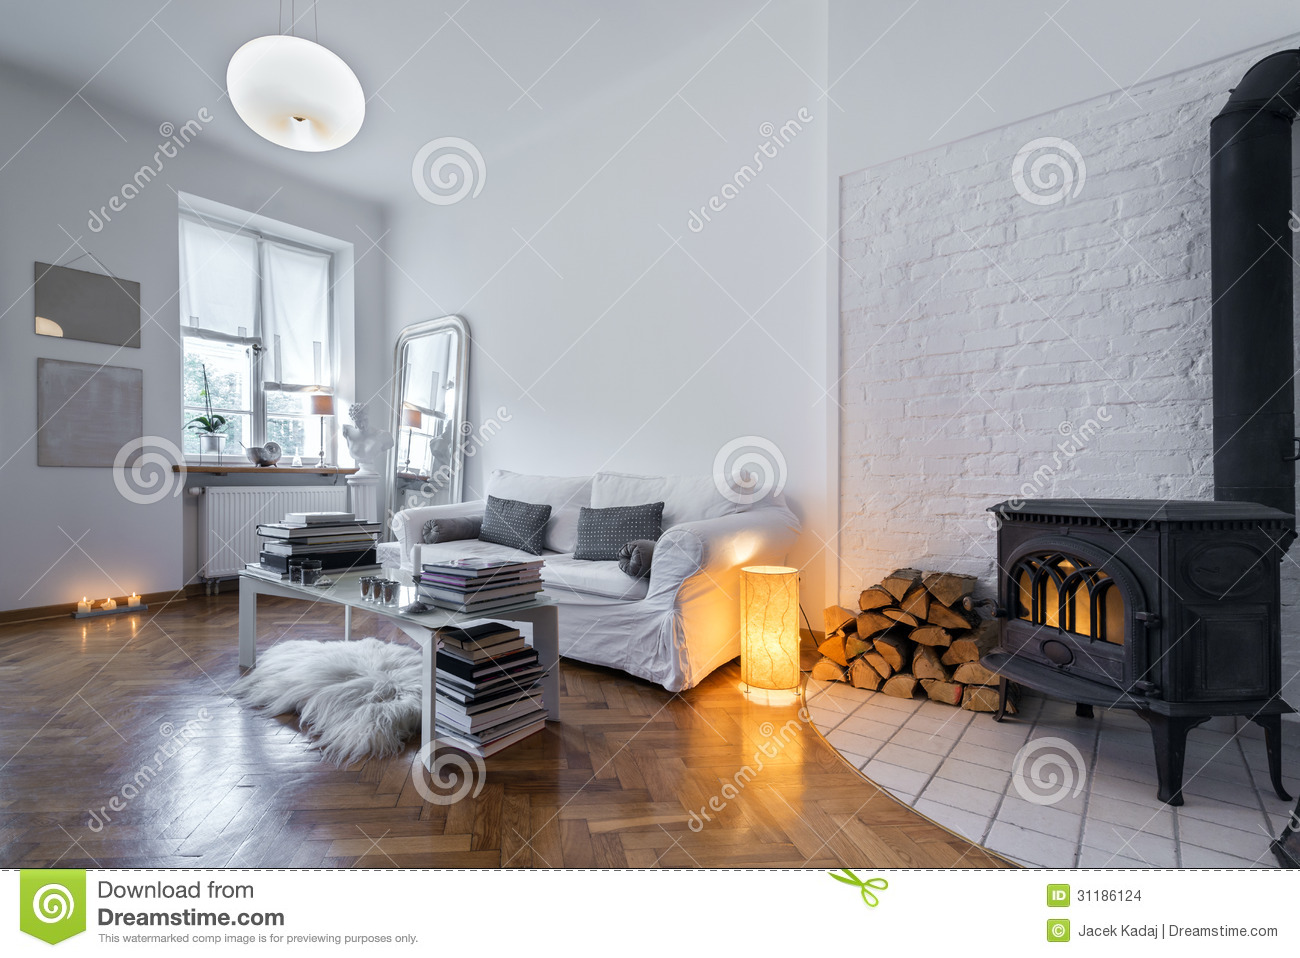 Captivating Post Modern Interior Design Stock Photo   Image Of Fireplace, Classic:  31186124